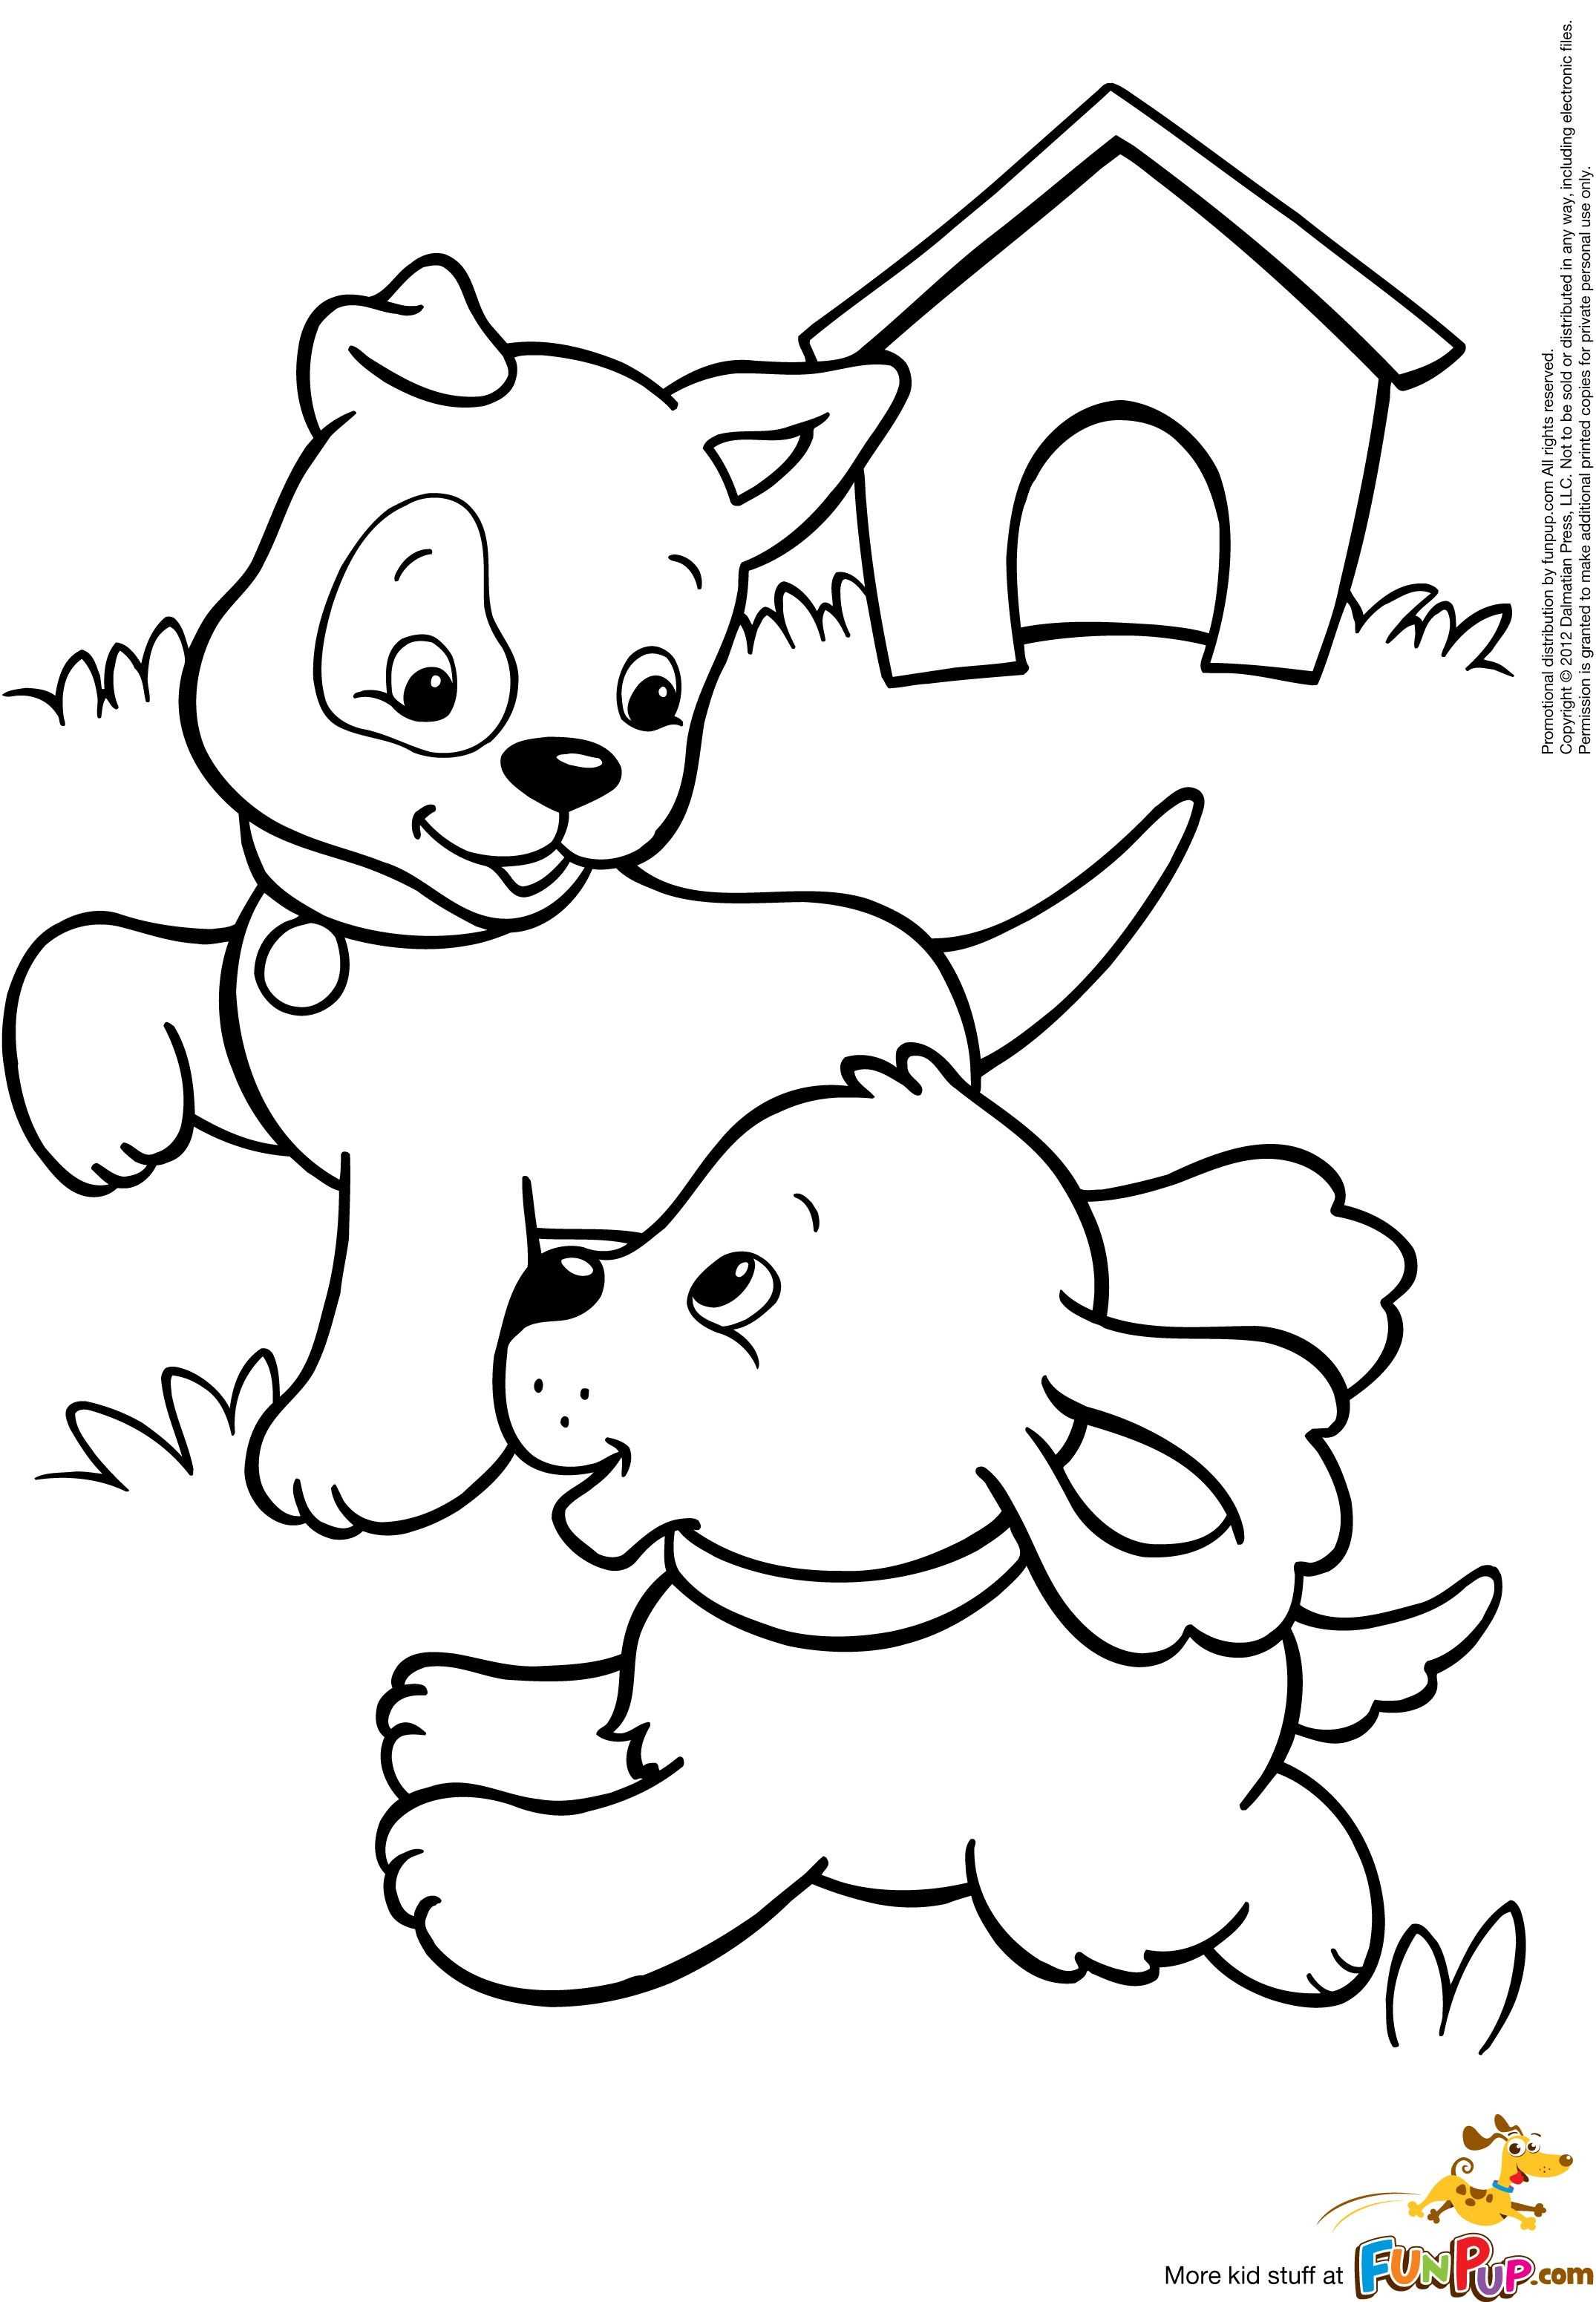 Coloring Pages Printable Coloring Pages Of Puppies puppy printable coloring pages eassume com eassume